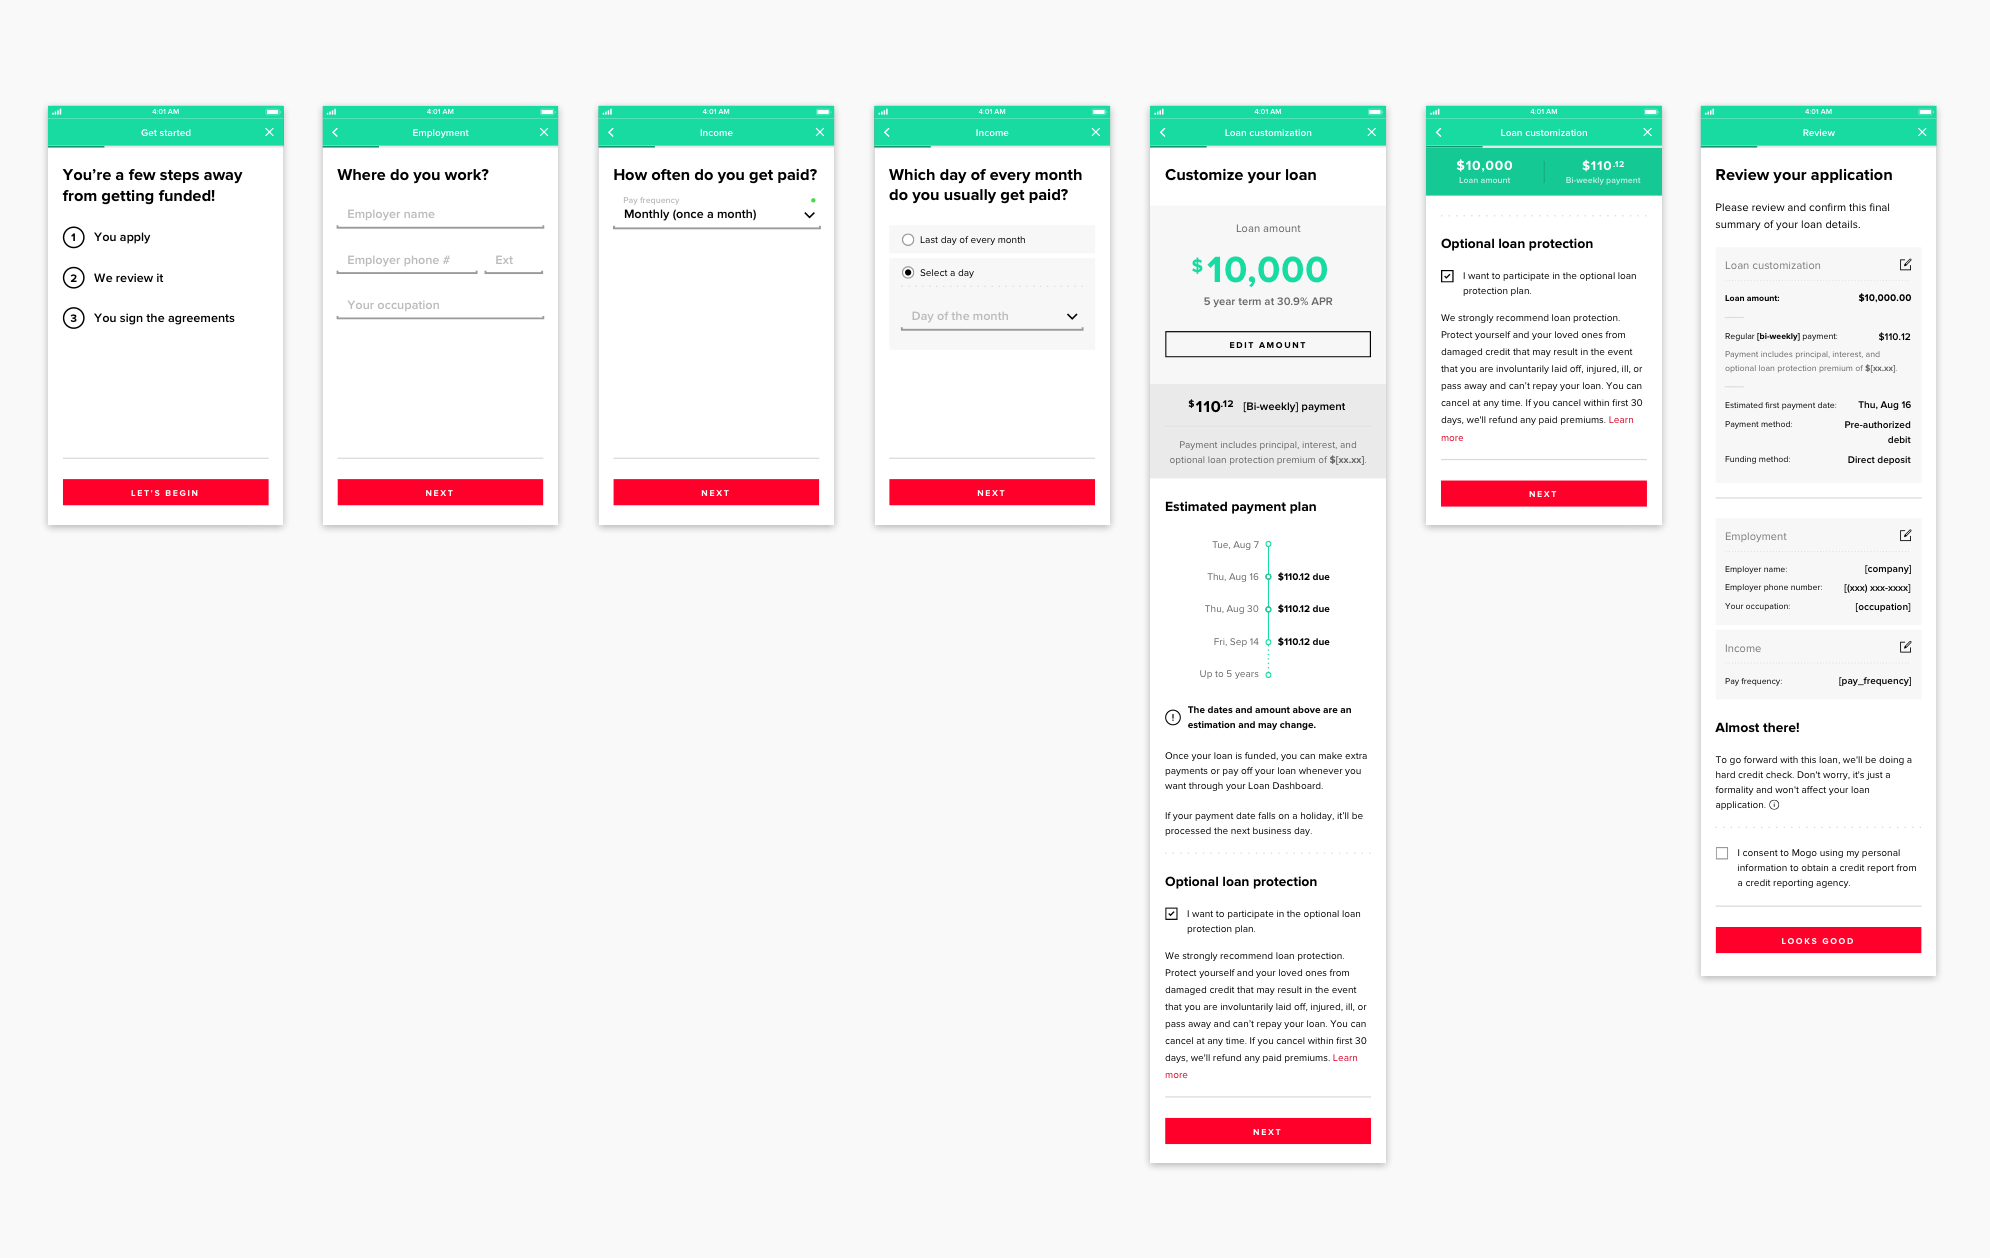 High-fidelity mockups for the loan application (experience before the Bank Verification flow).